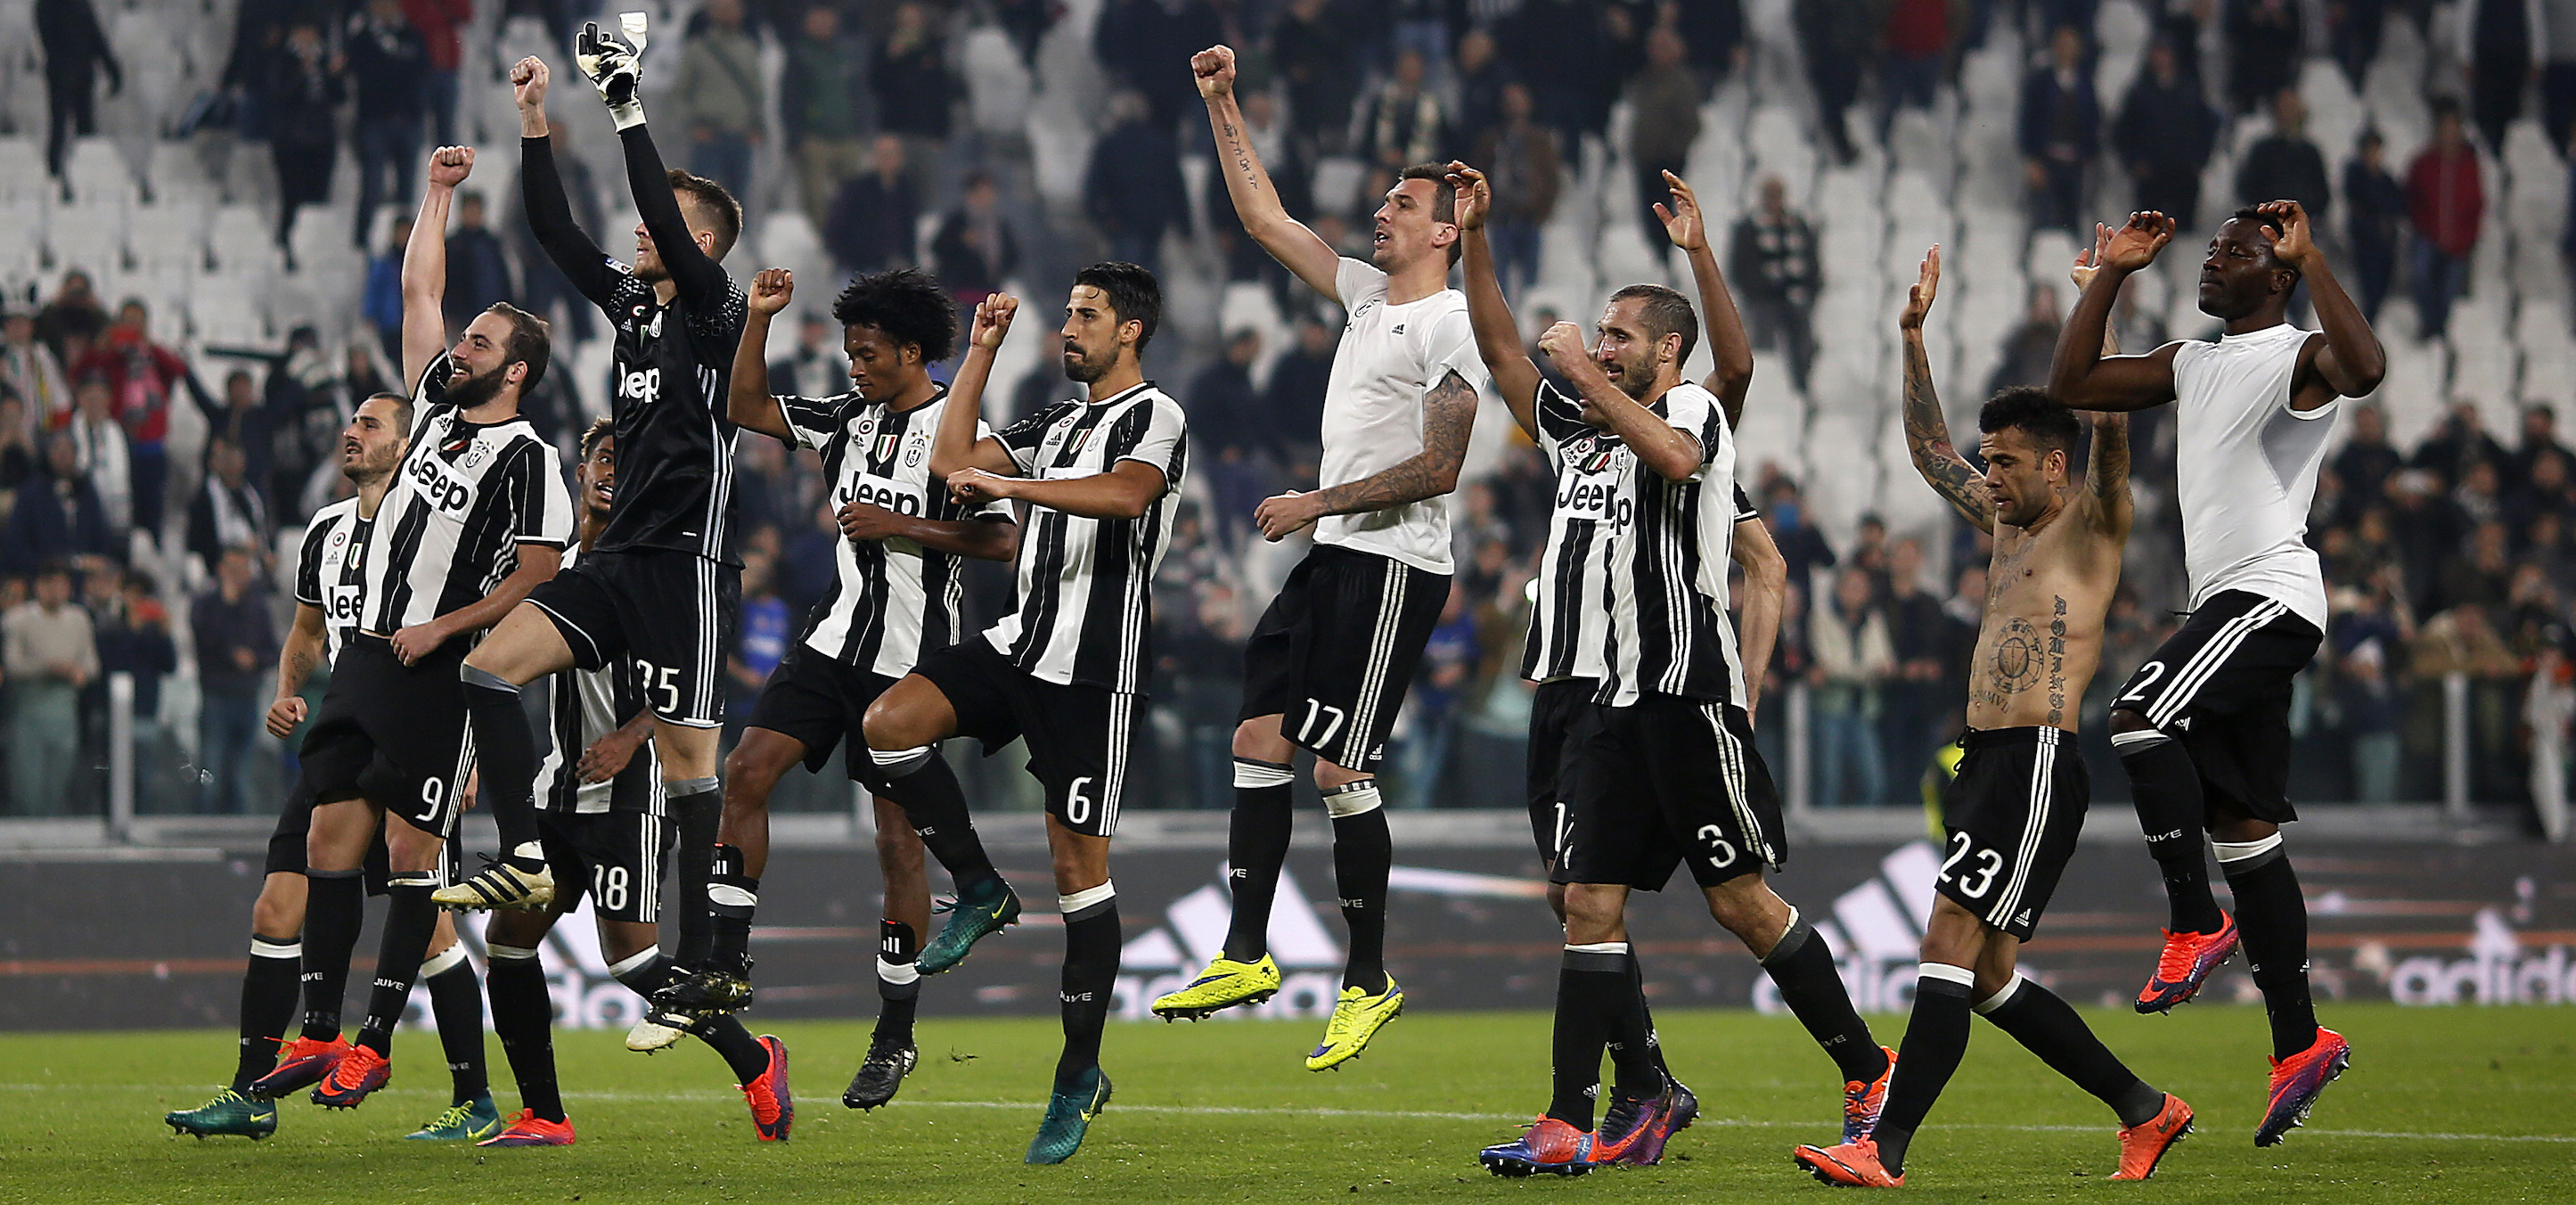 Juventus' team players celebrate with fans after winning the Italian Serie A football match Juventus Vs Sampdoria on October 26, 2016 at the 'Juventus Stadium' in Turin. / AFP / MARCO BERTORELLO (Photo credit should read MARCO BERTORELLO/AFP/Getty Images)